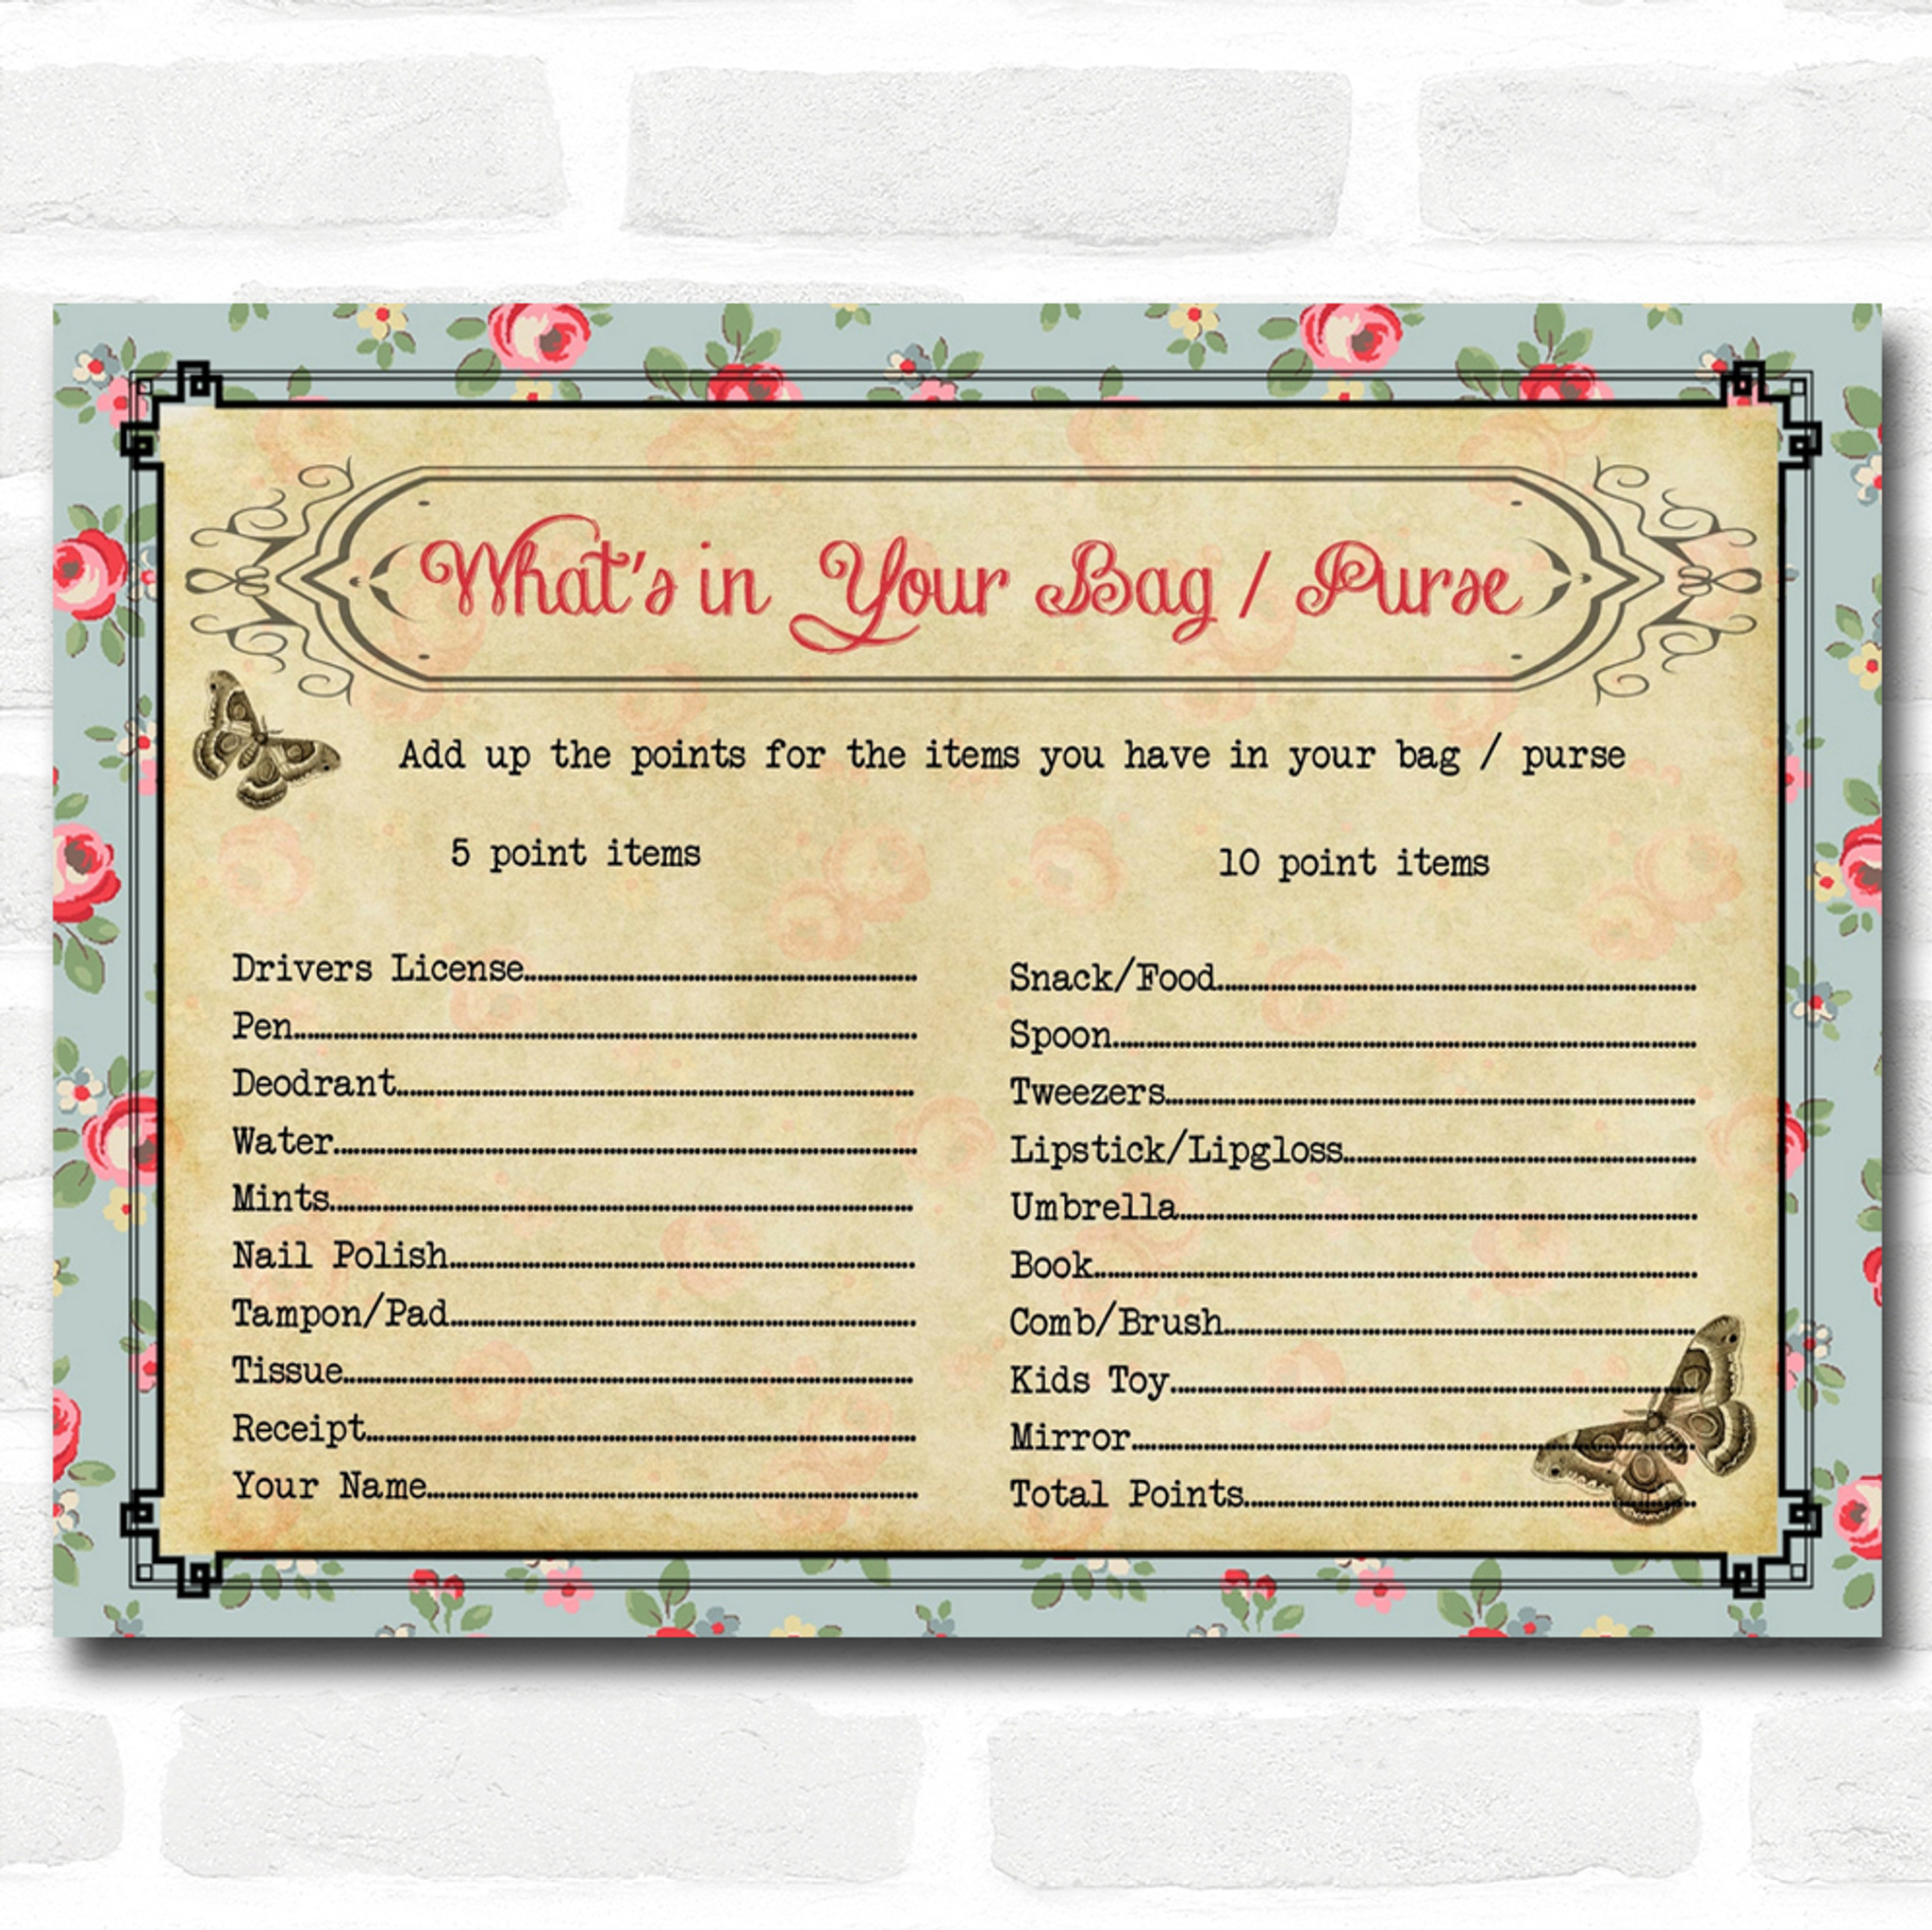 Shabby Chic Tea Party Baby Shower Games WhatÆs in Your Bag Purse Cards